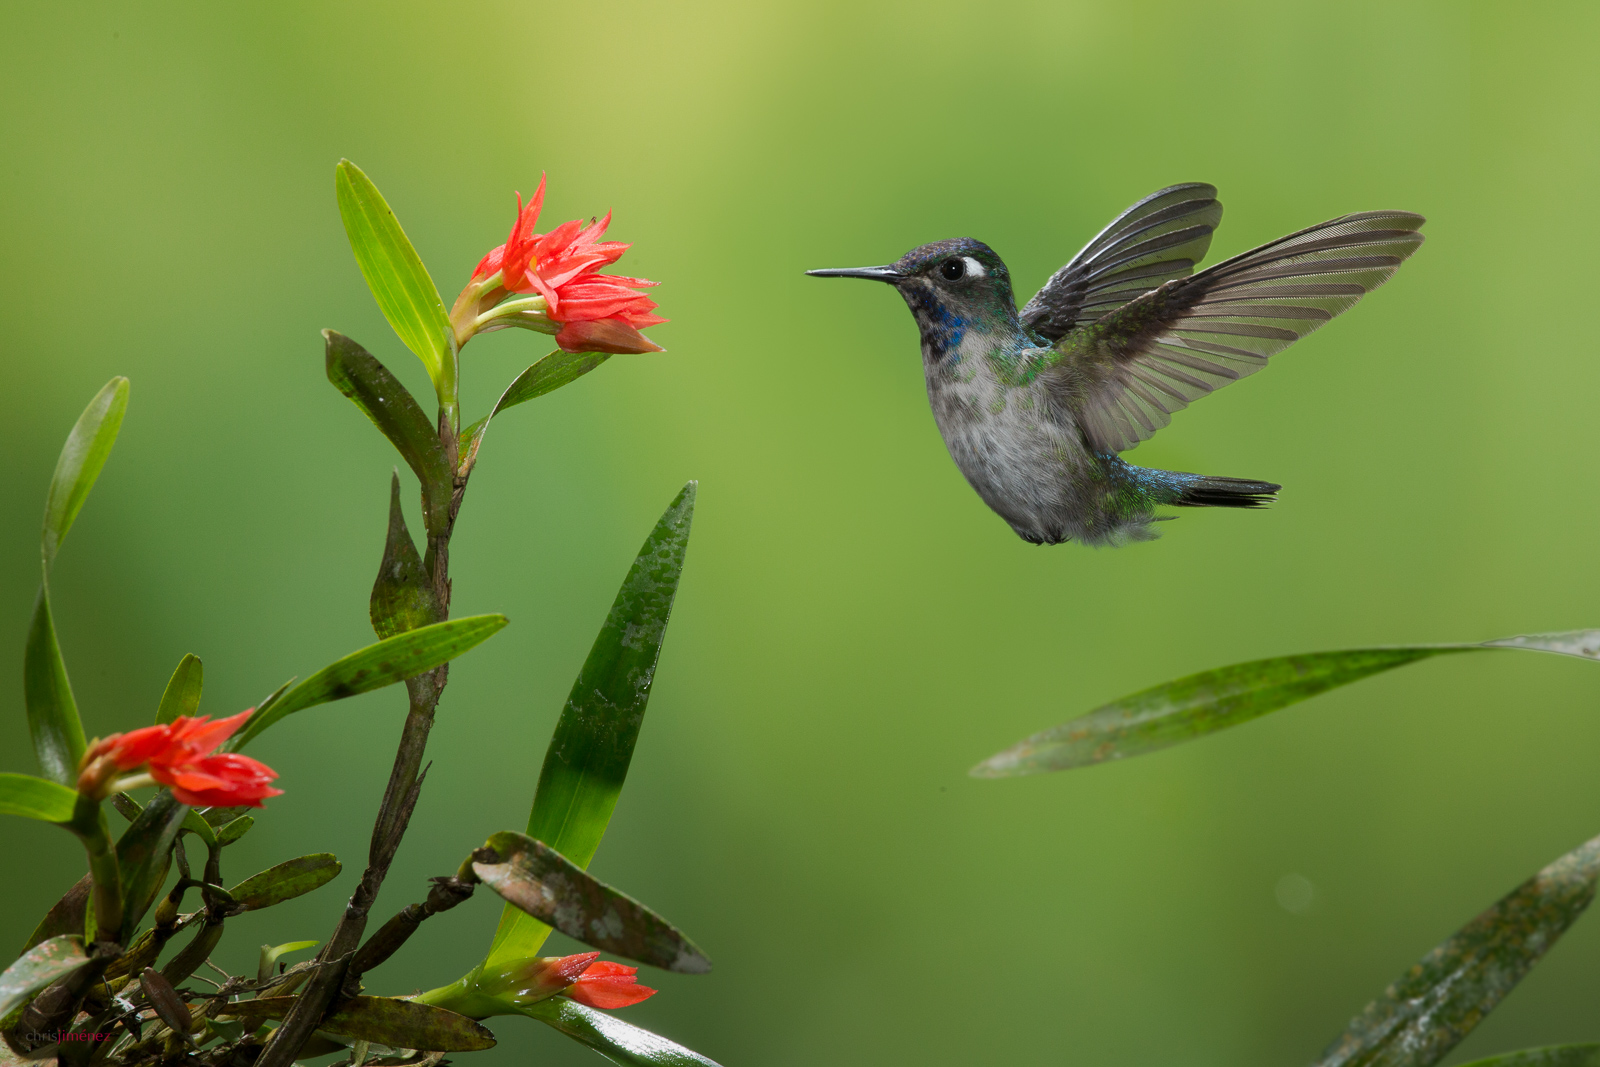 Violet-headed Hummingbird (Klais guimeti) male, feeding from flowers at the lowlands of Costa Rica